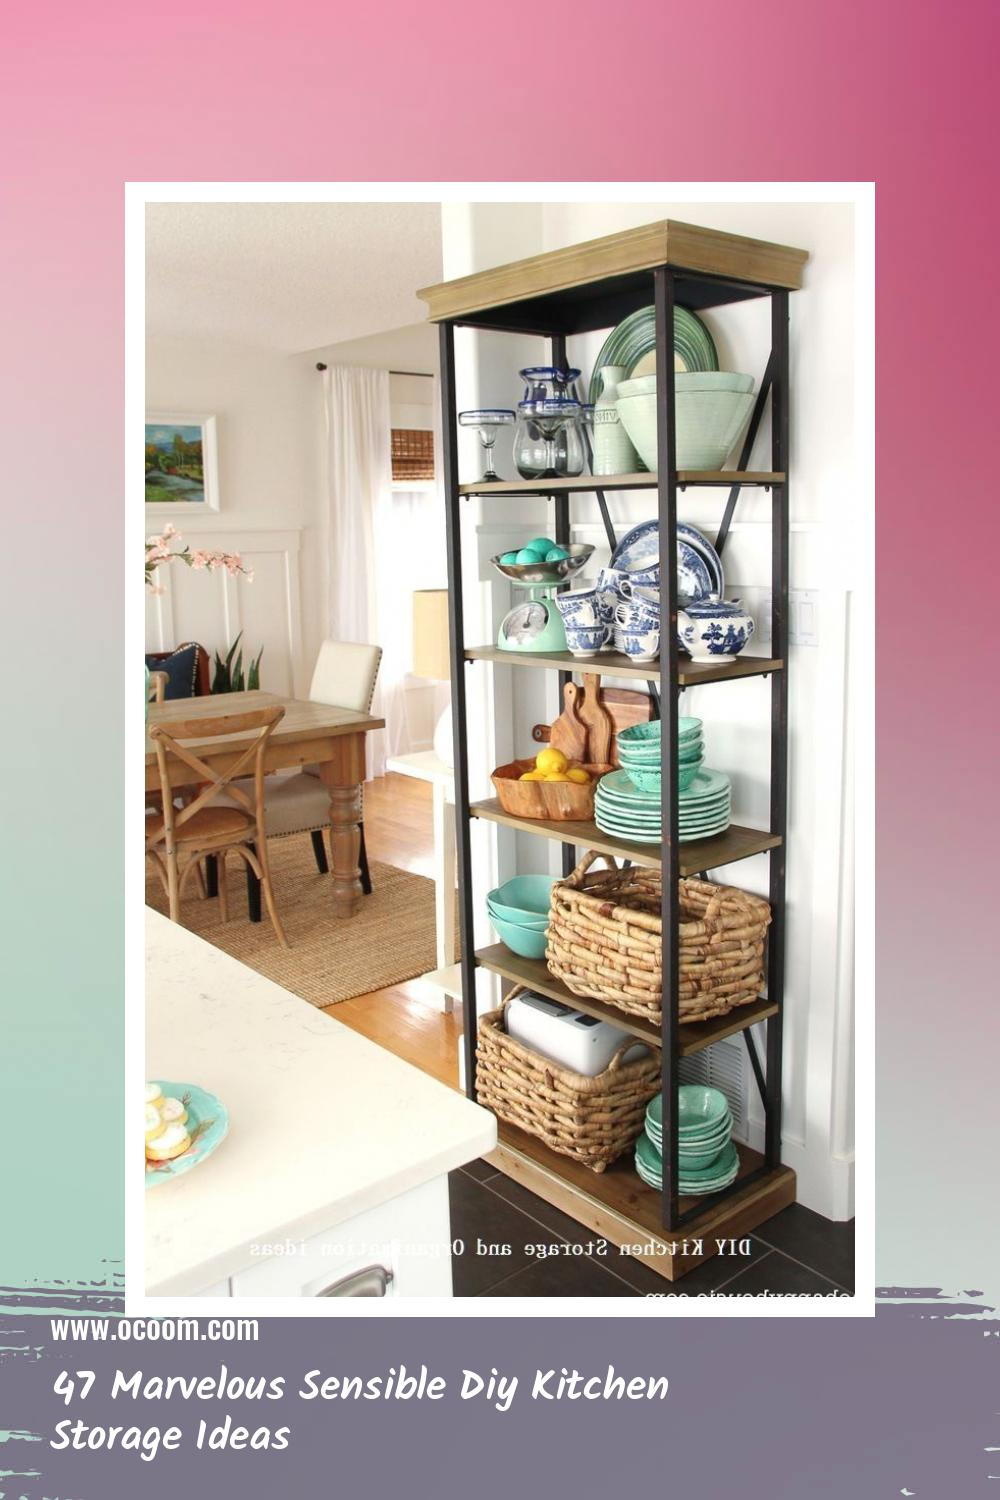 47 Marvelous Sensible Diy Kitchen Storage Ideas 33